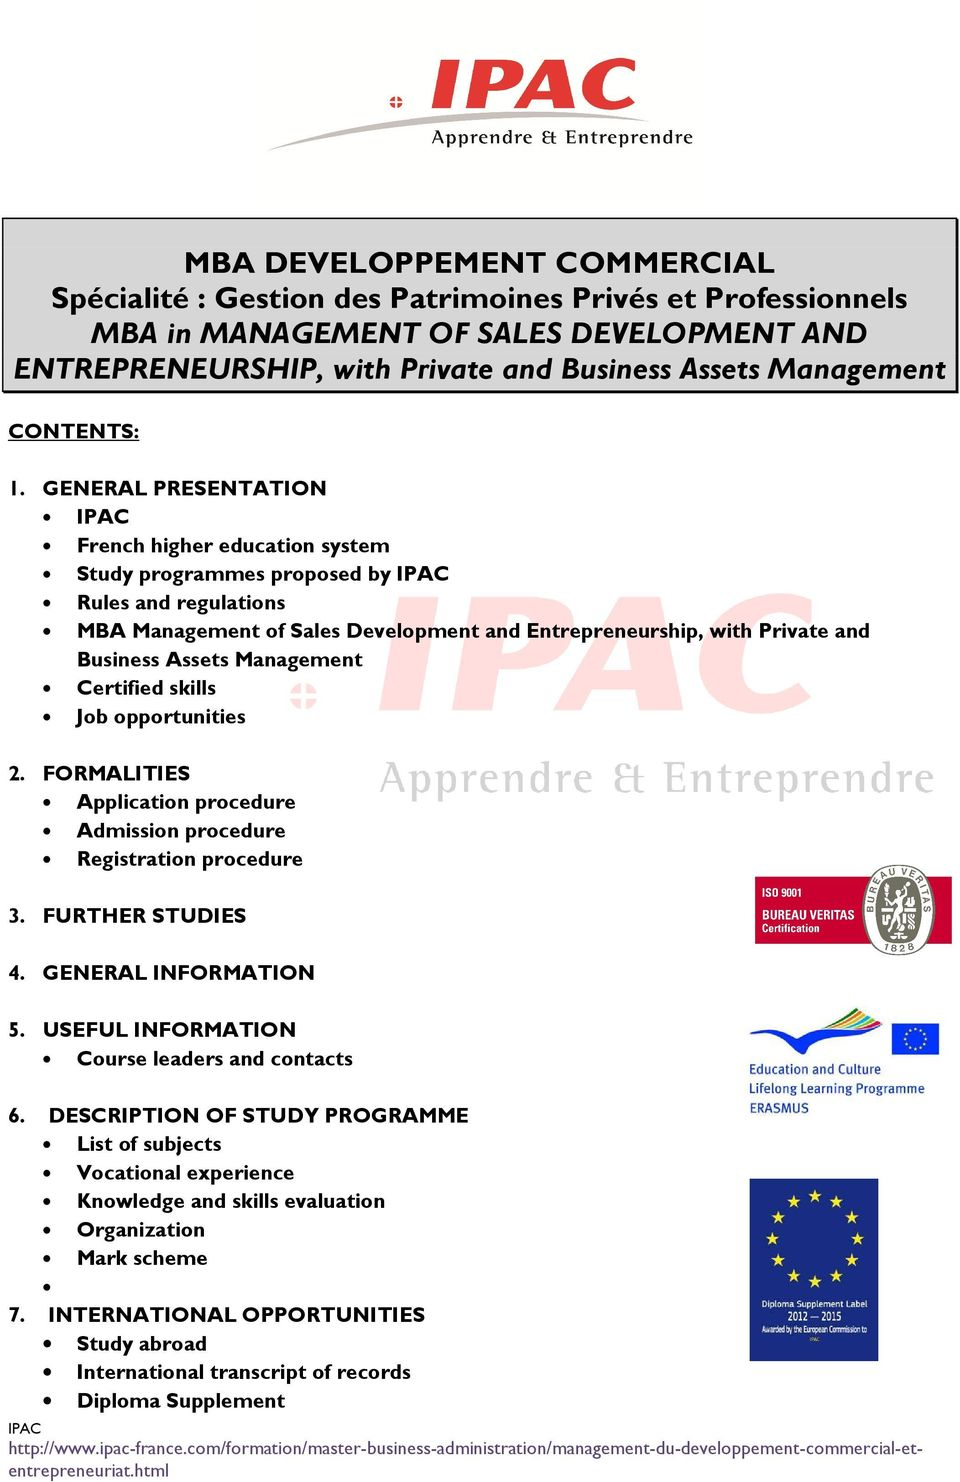 GENERAL PRESENTATION French higher education system Study programmes proposed by Rules and regulations MBA Management of Sales Development and Entrepreneurship, with Private and Business Assets